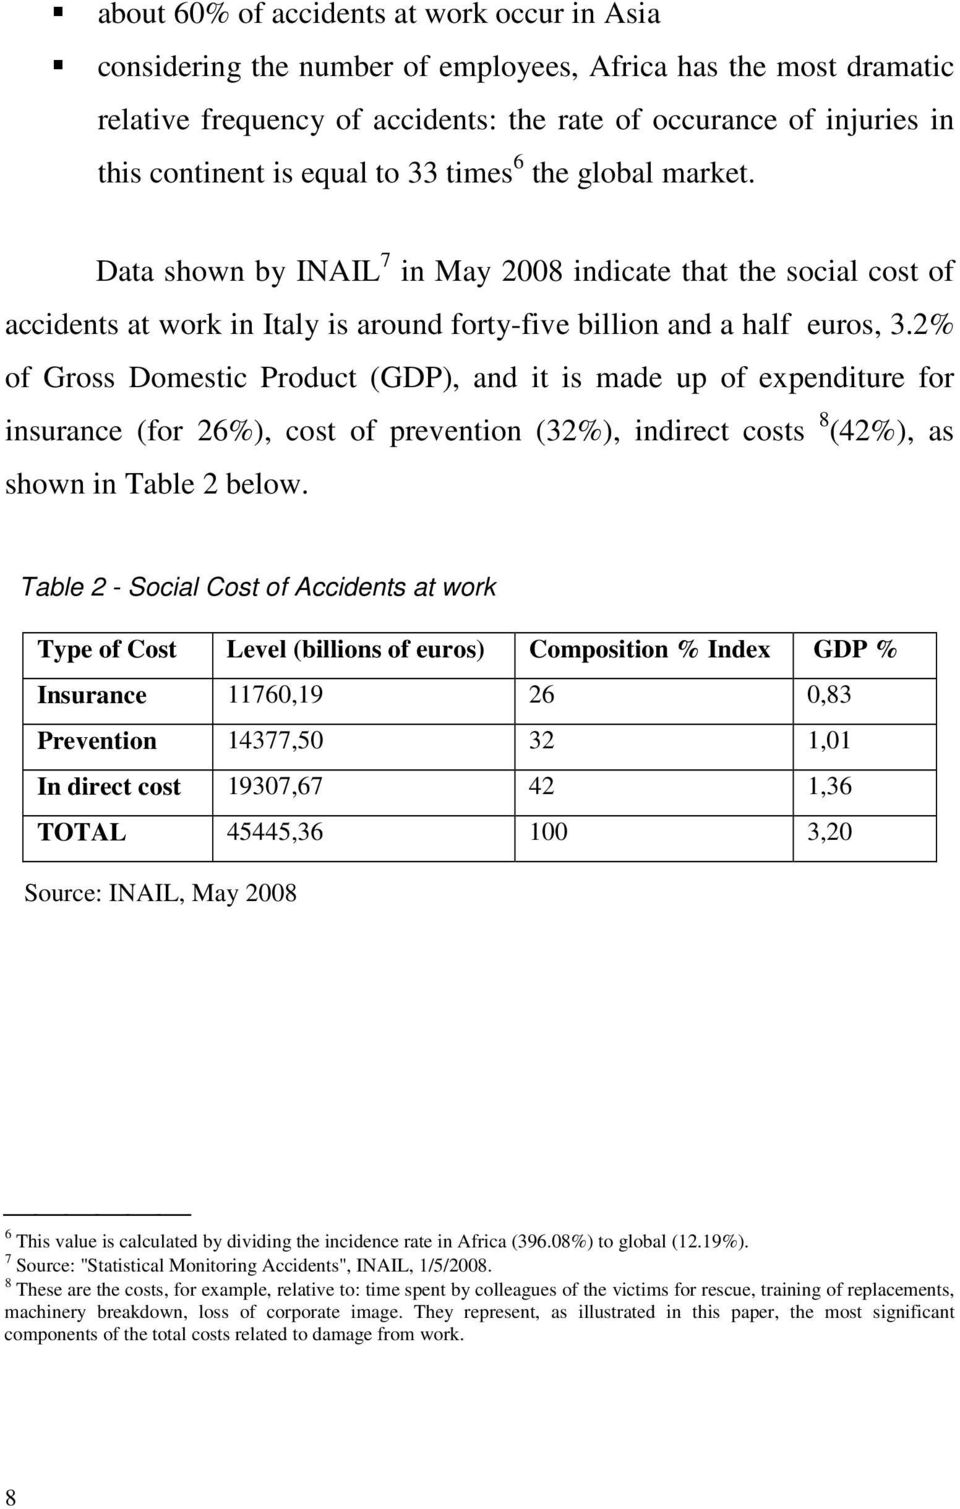 2% of Gross Domestic Product (GDP), and it is made up of expenditure for insurance (for 26%), cost of prevention (32%), indirect costs 8 (42%), as shown in Table 2 below.